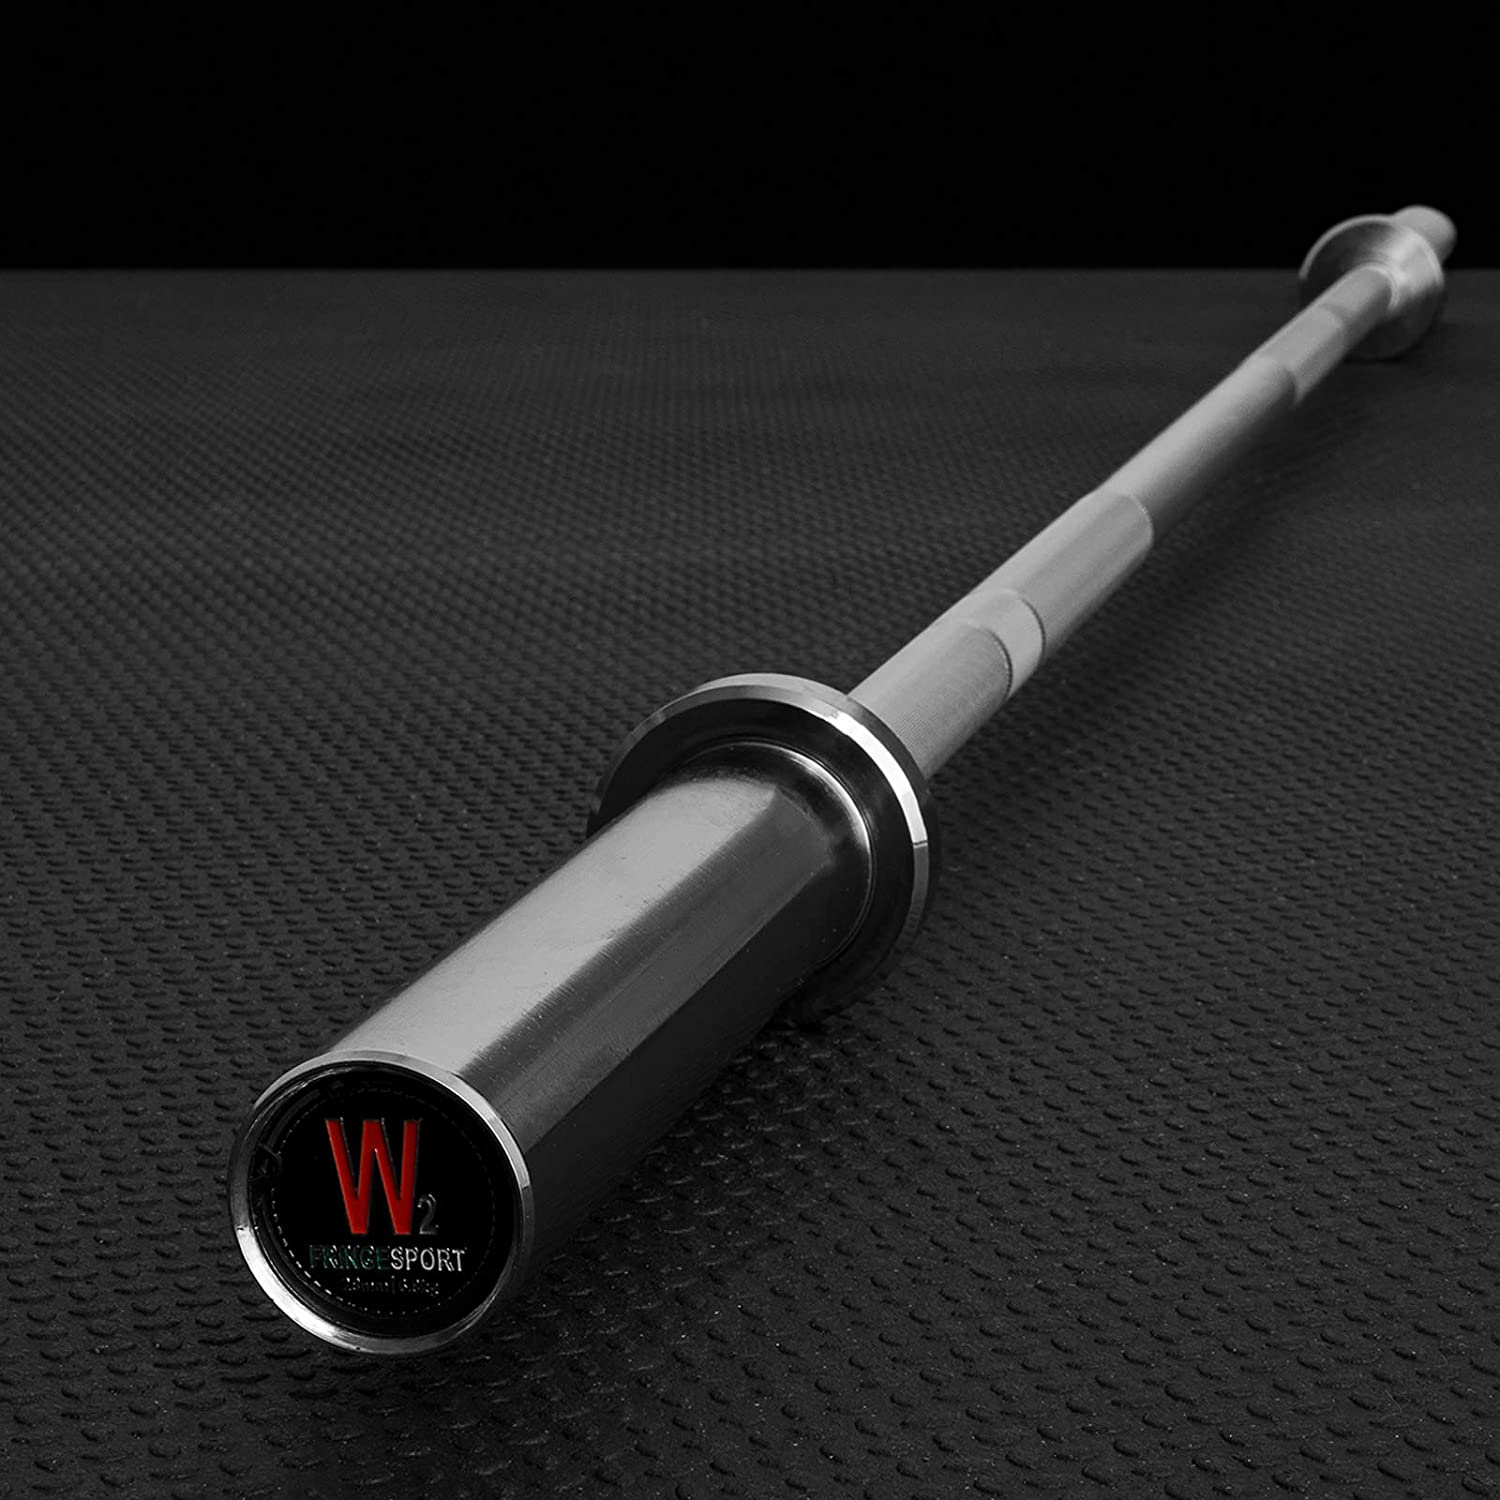 15lb Training Barbell by Fringe Sport Entry Level Bar for Novice Lifters, Teens, and Children